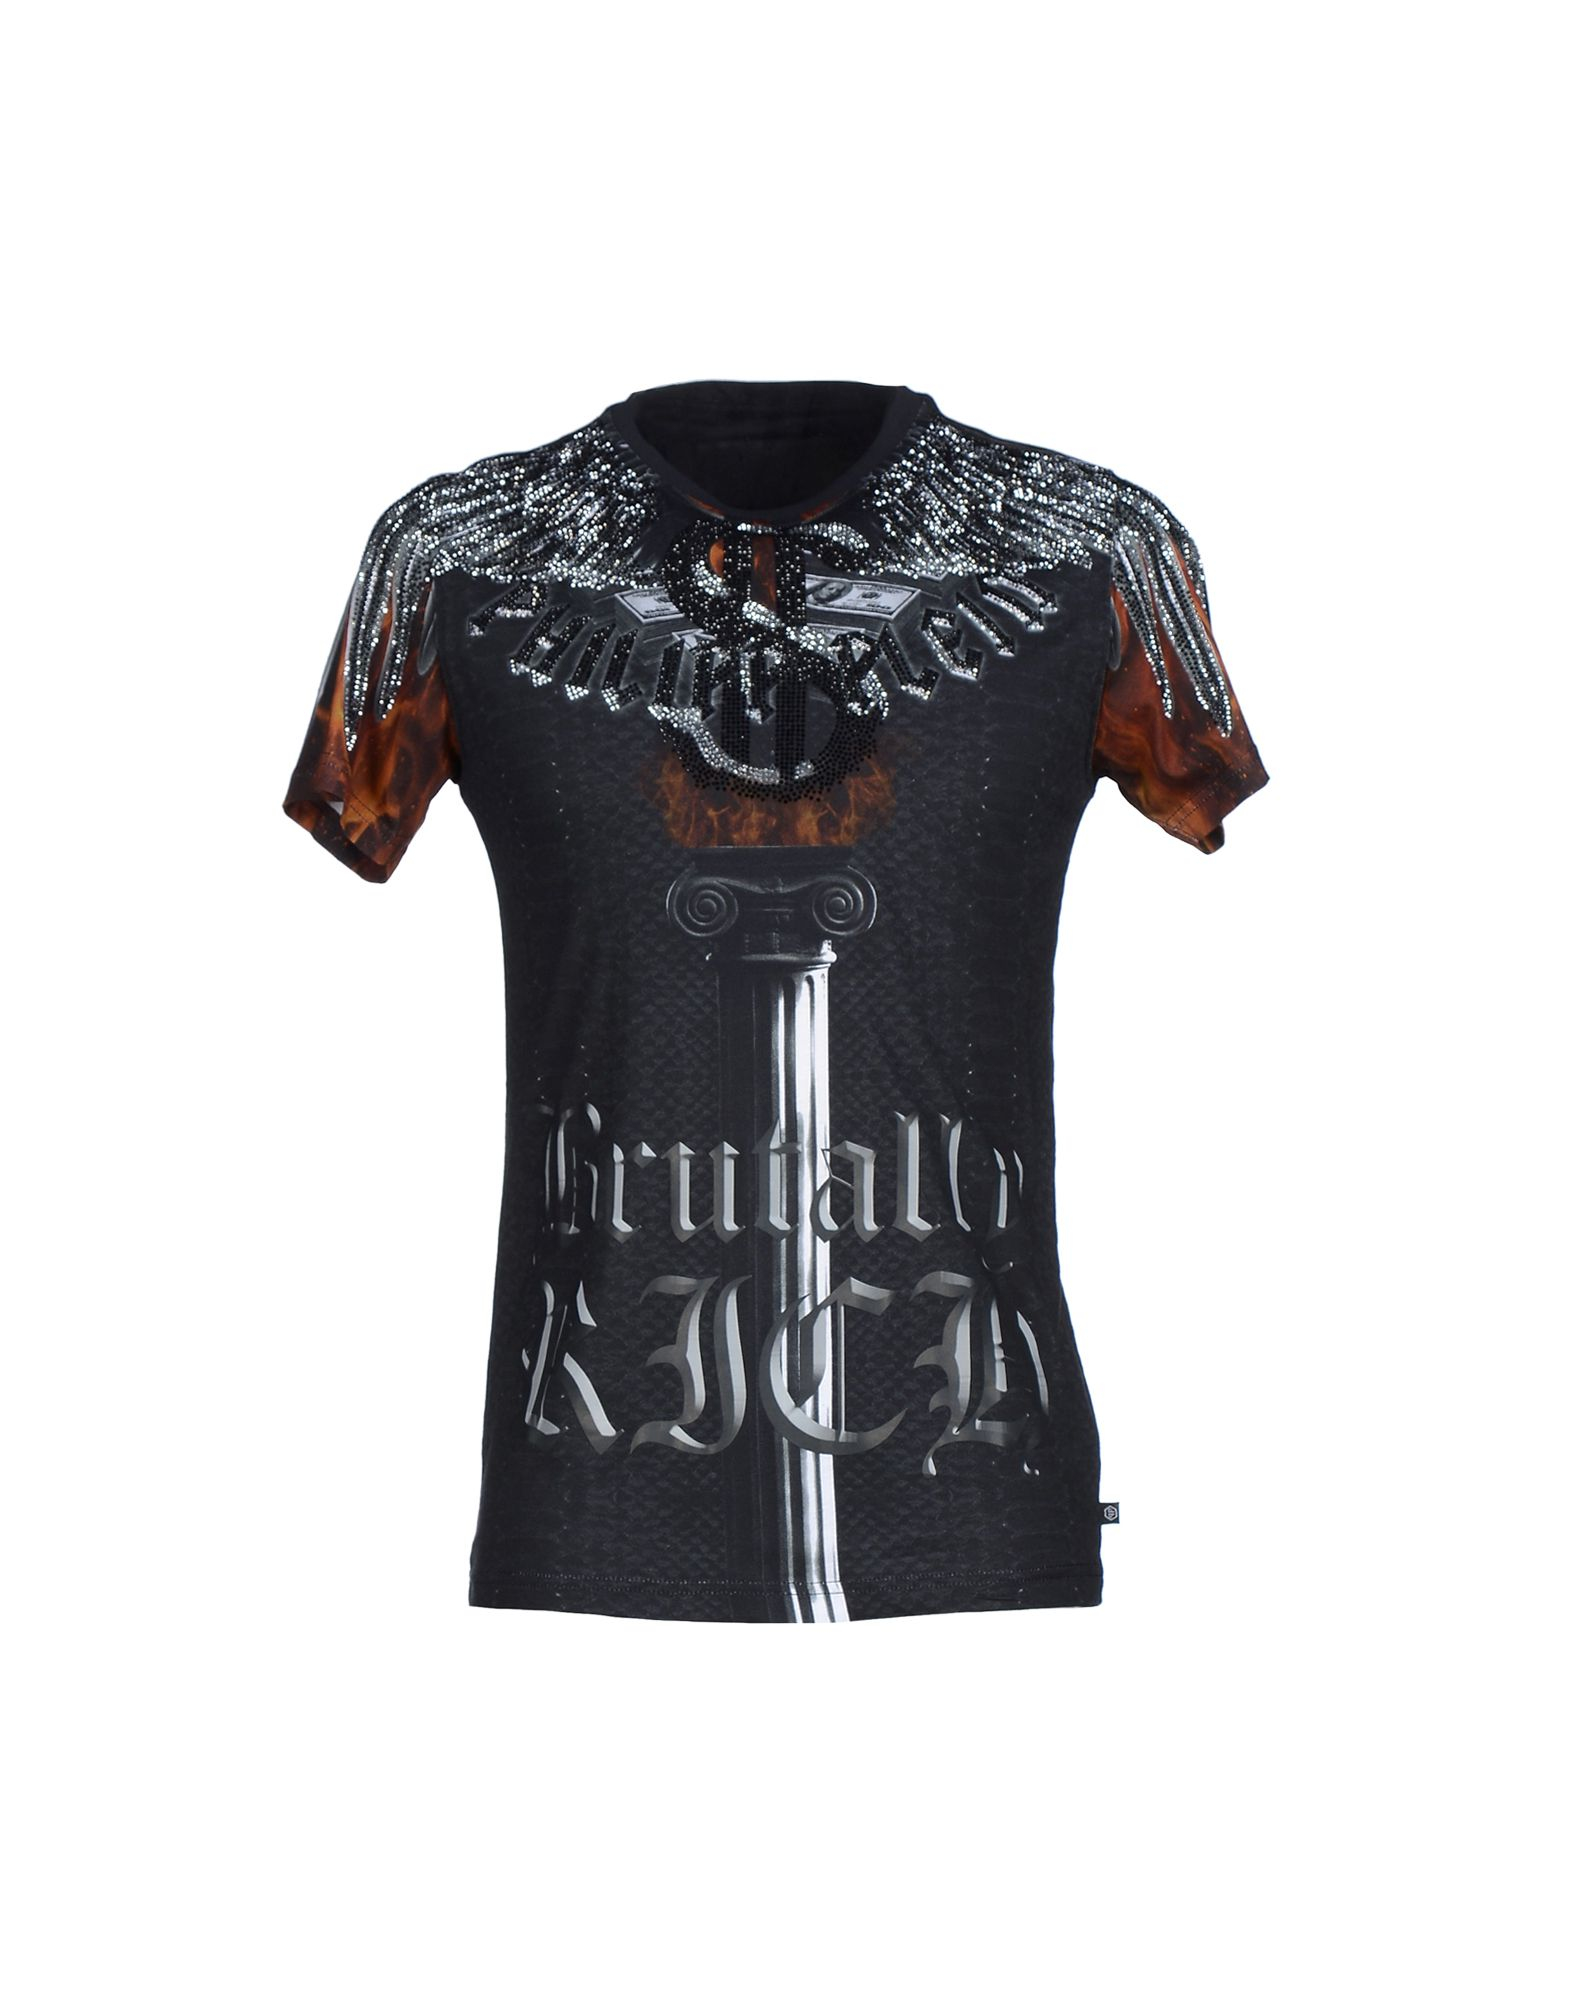 philipp plein t shirt in black for men lyst. Black Bedroom Furniture Sets. Home Design Ideas